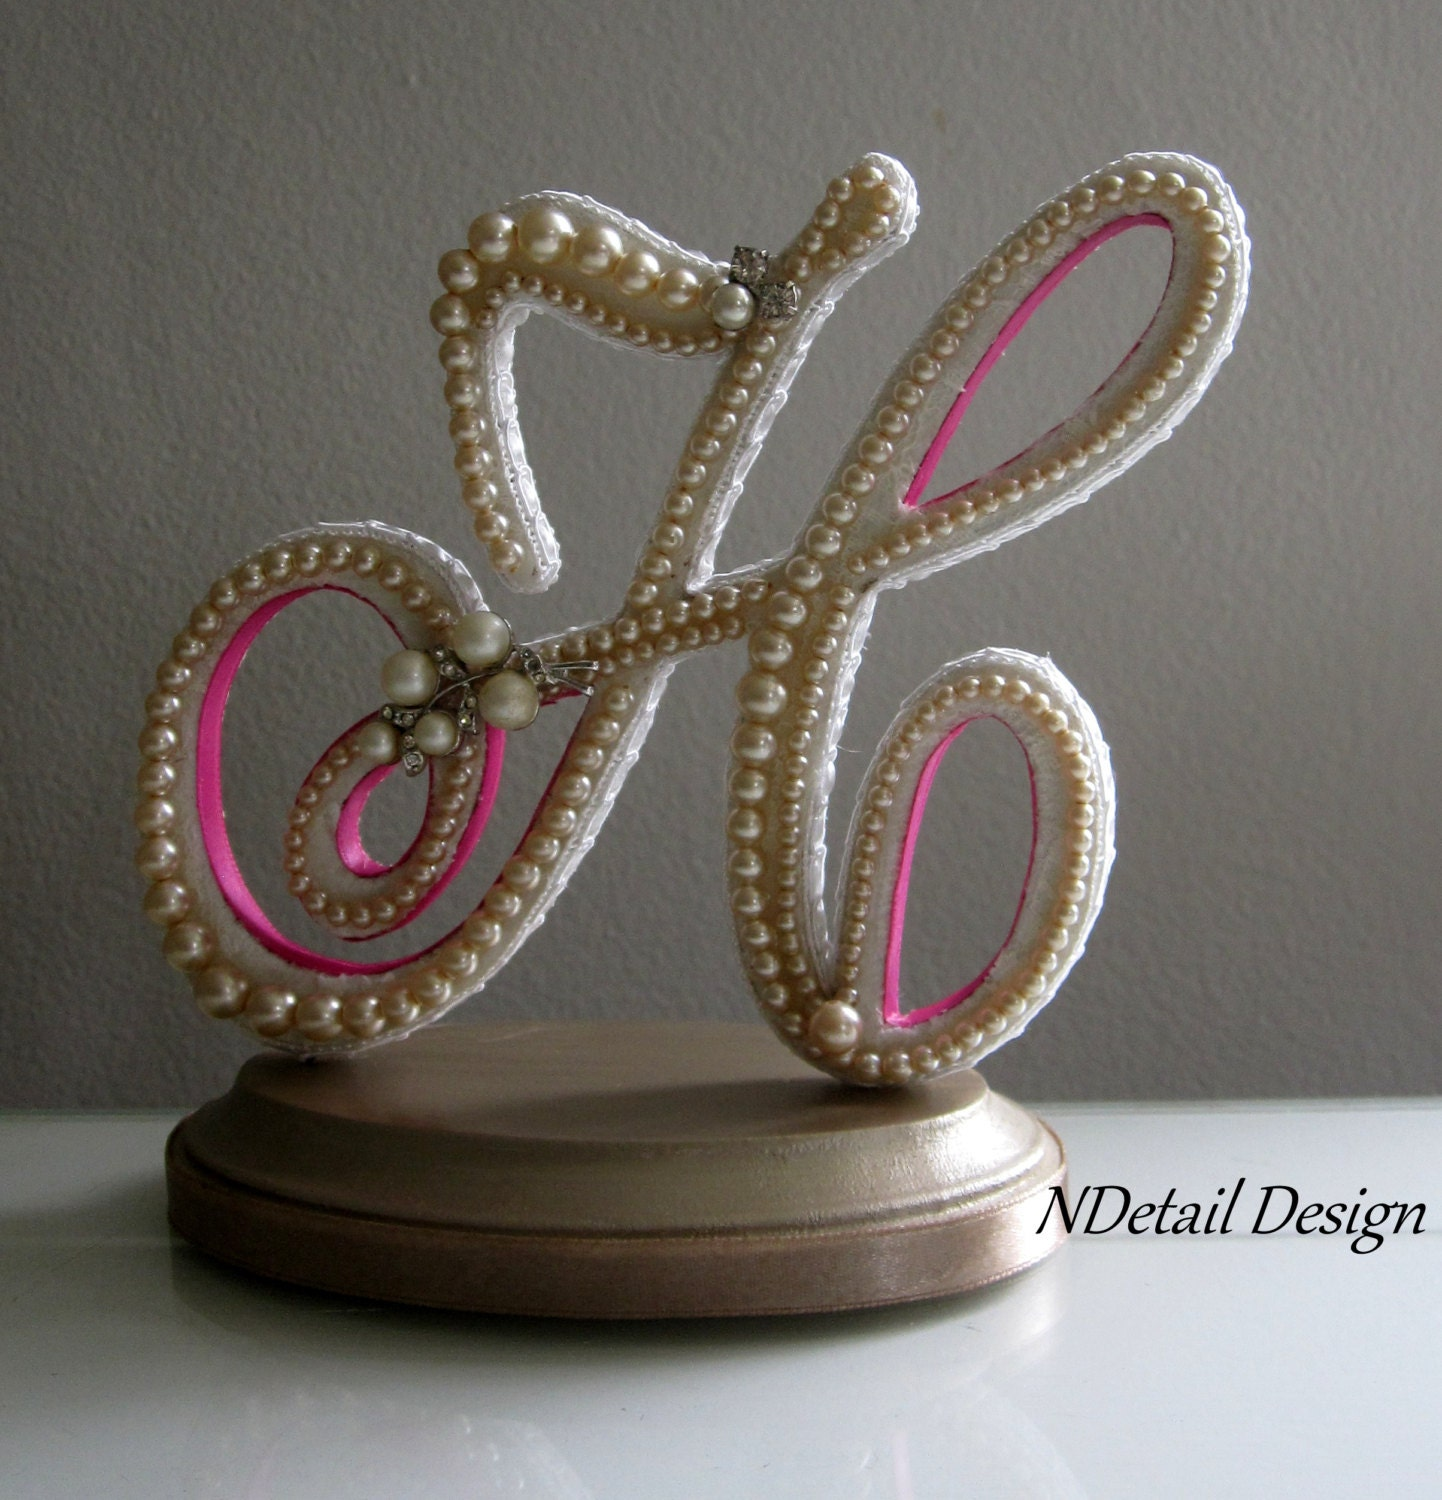 Wedding Cake Toppers Letter H : Items similar to Wedding Cake Topper Monogram Letter H ...